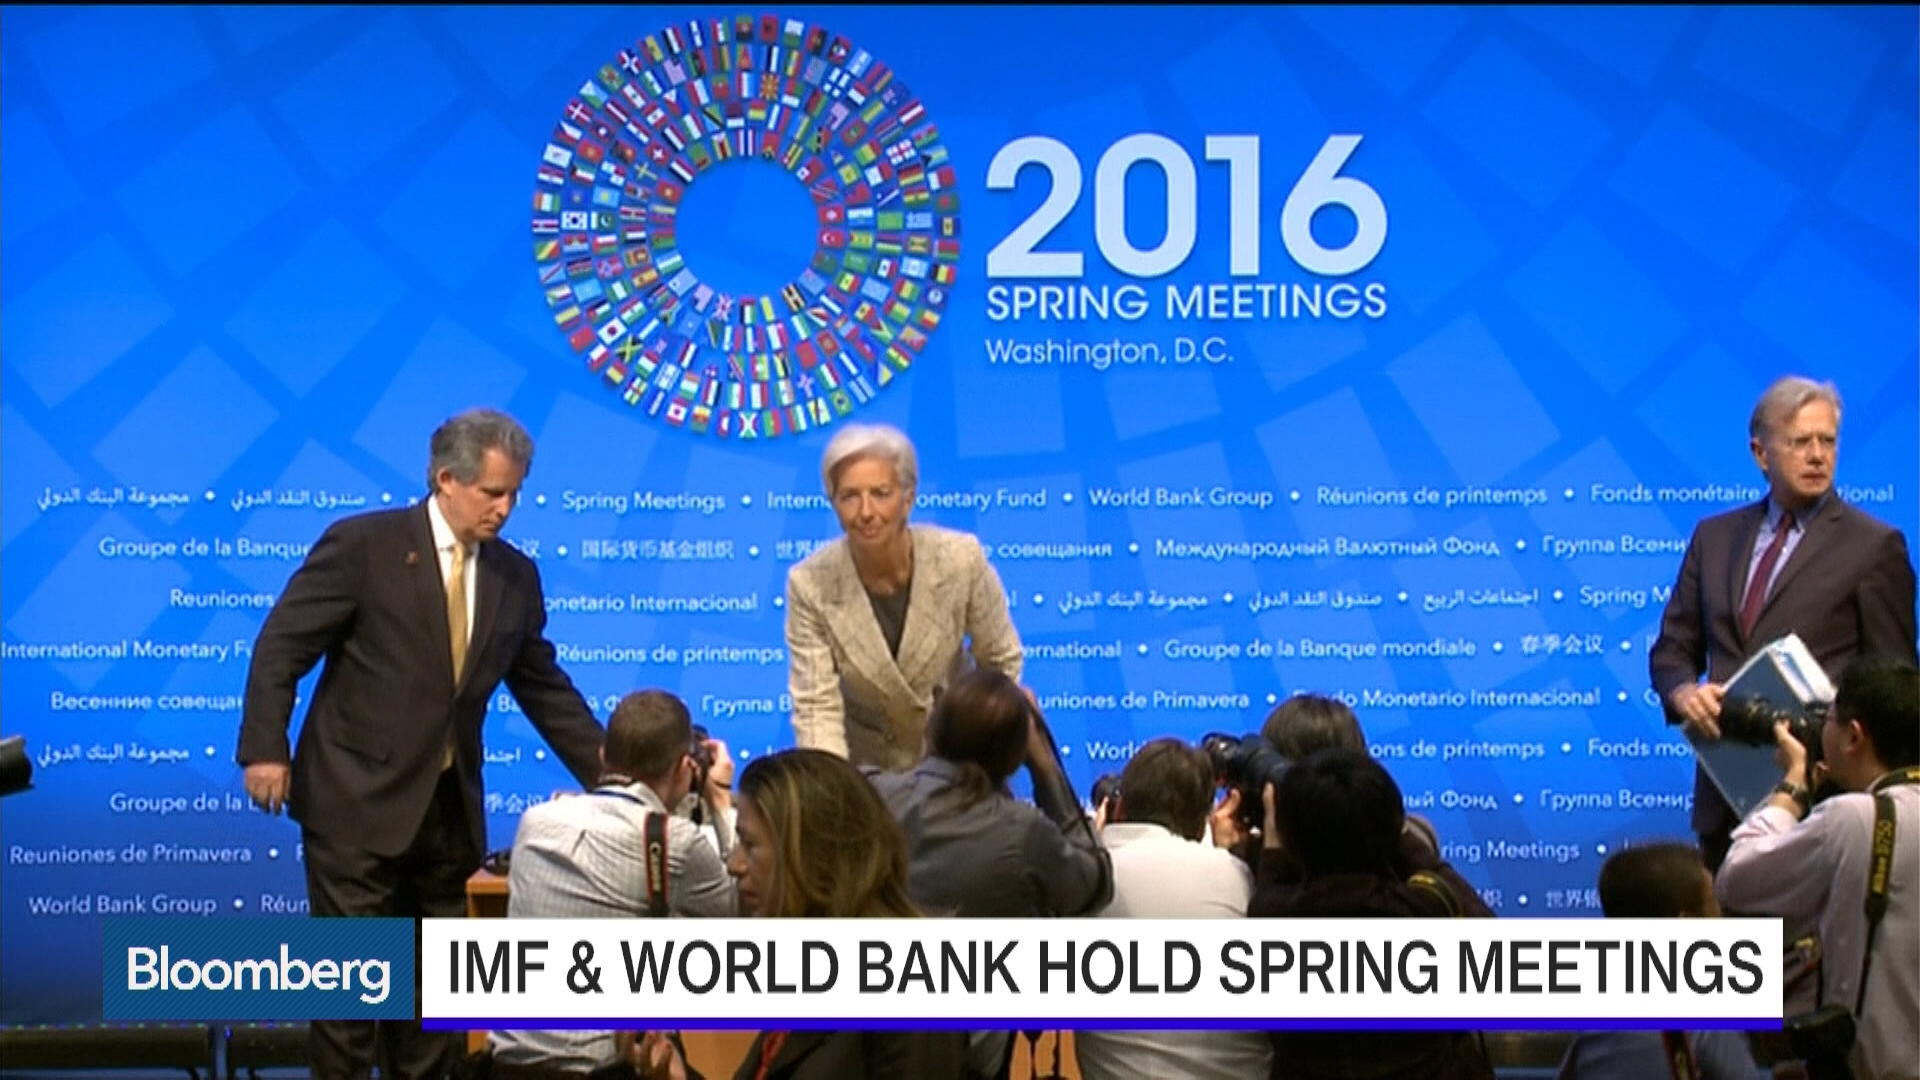 IMF and World Bank Spring Meetings: What to Watch For